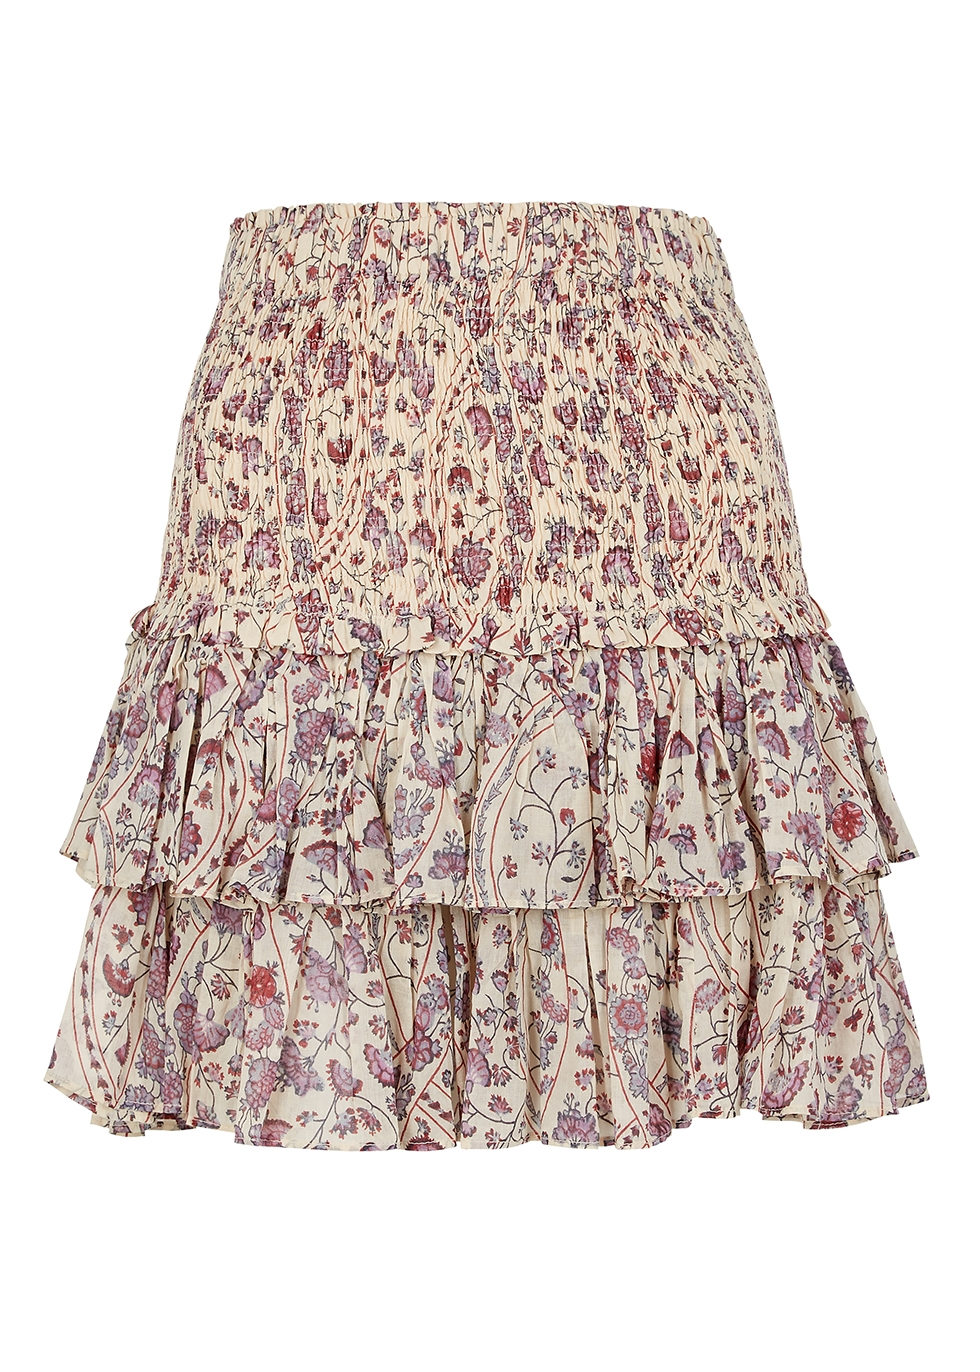 375e86bd1f78 Women's Designer Skirts - Harvey Nichols